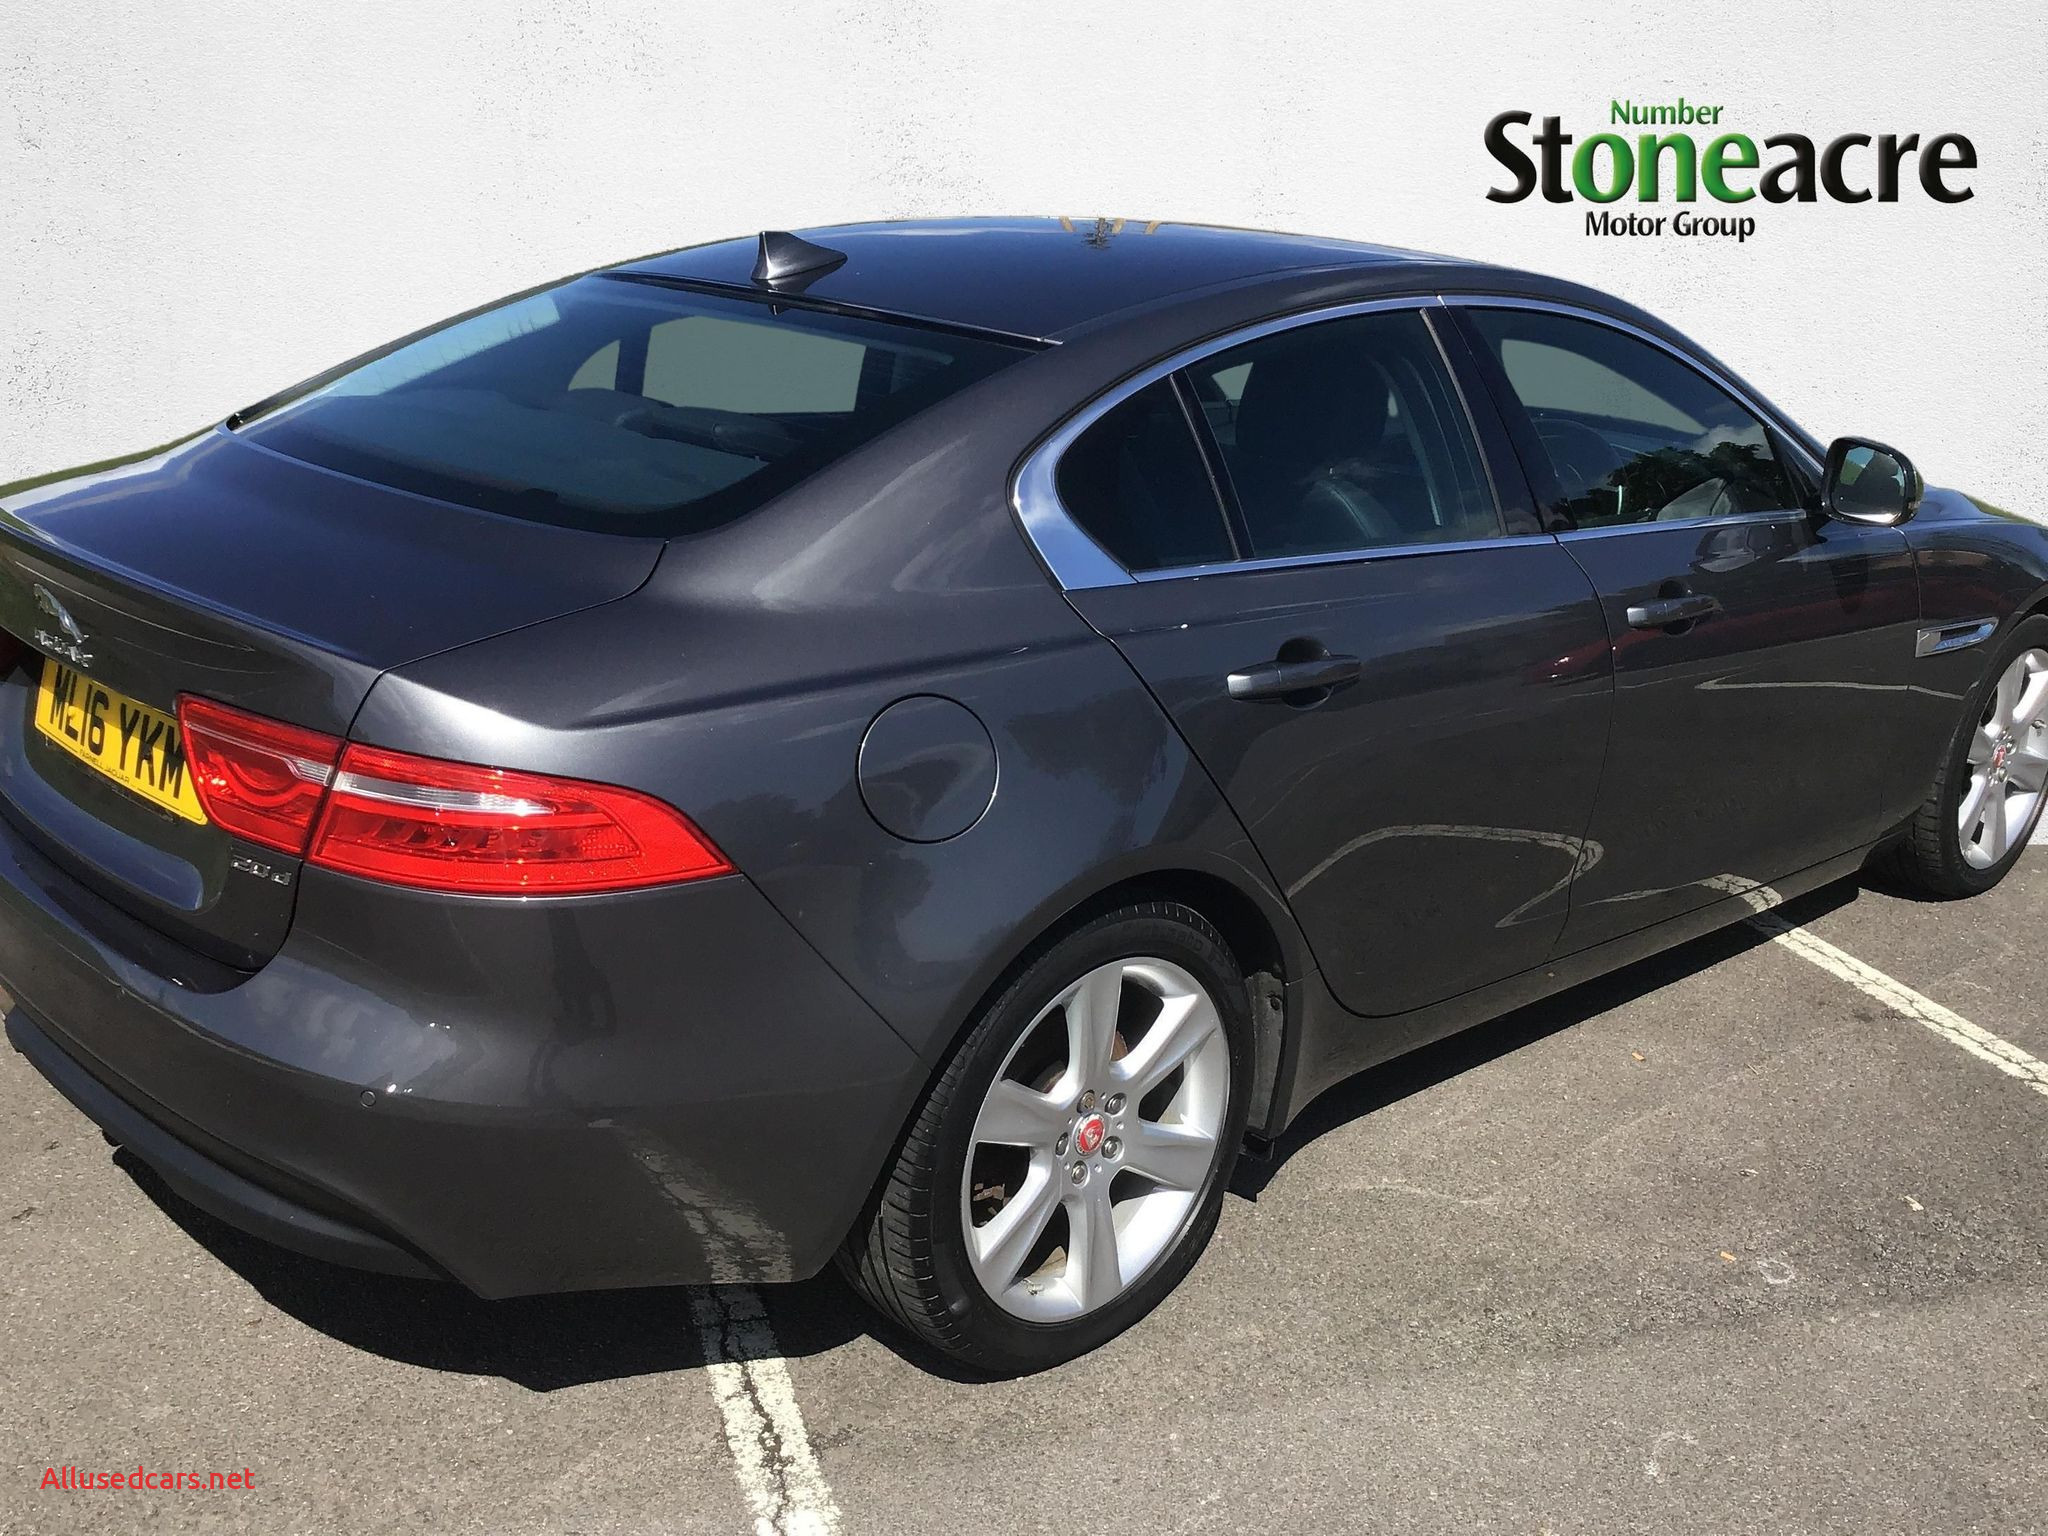 Used Cars for Sale with No Credit Luxury Used Jaguar Xe 2 0d [180] Portfolio 4dr Ml16ykm Stoneacre